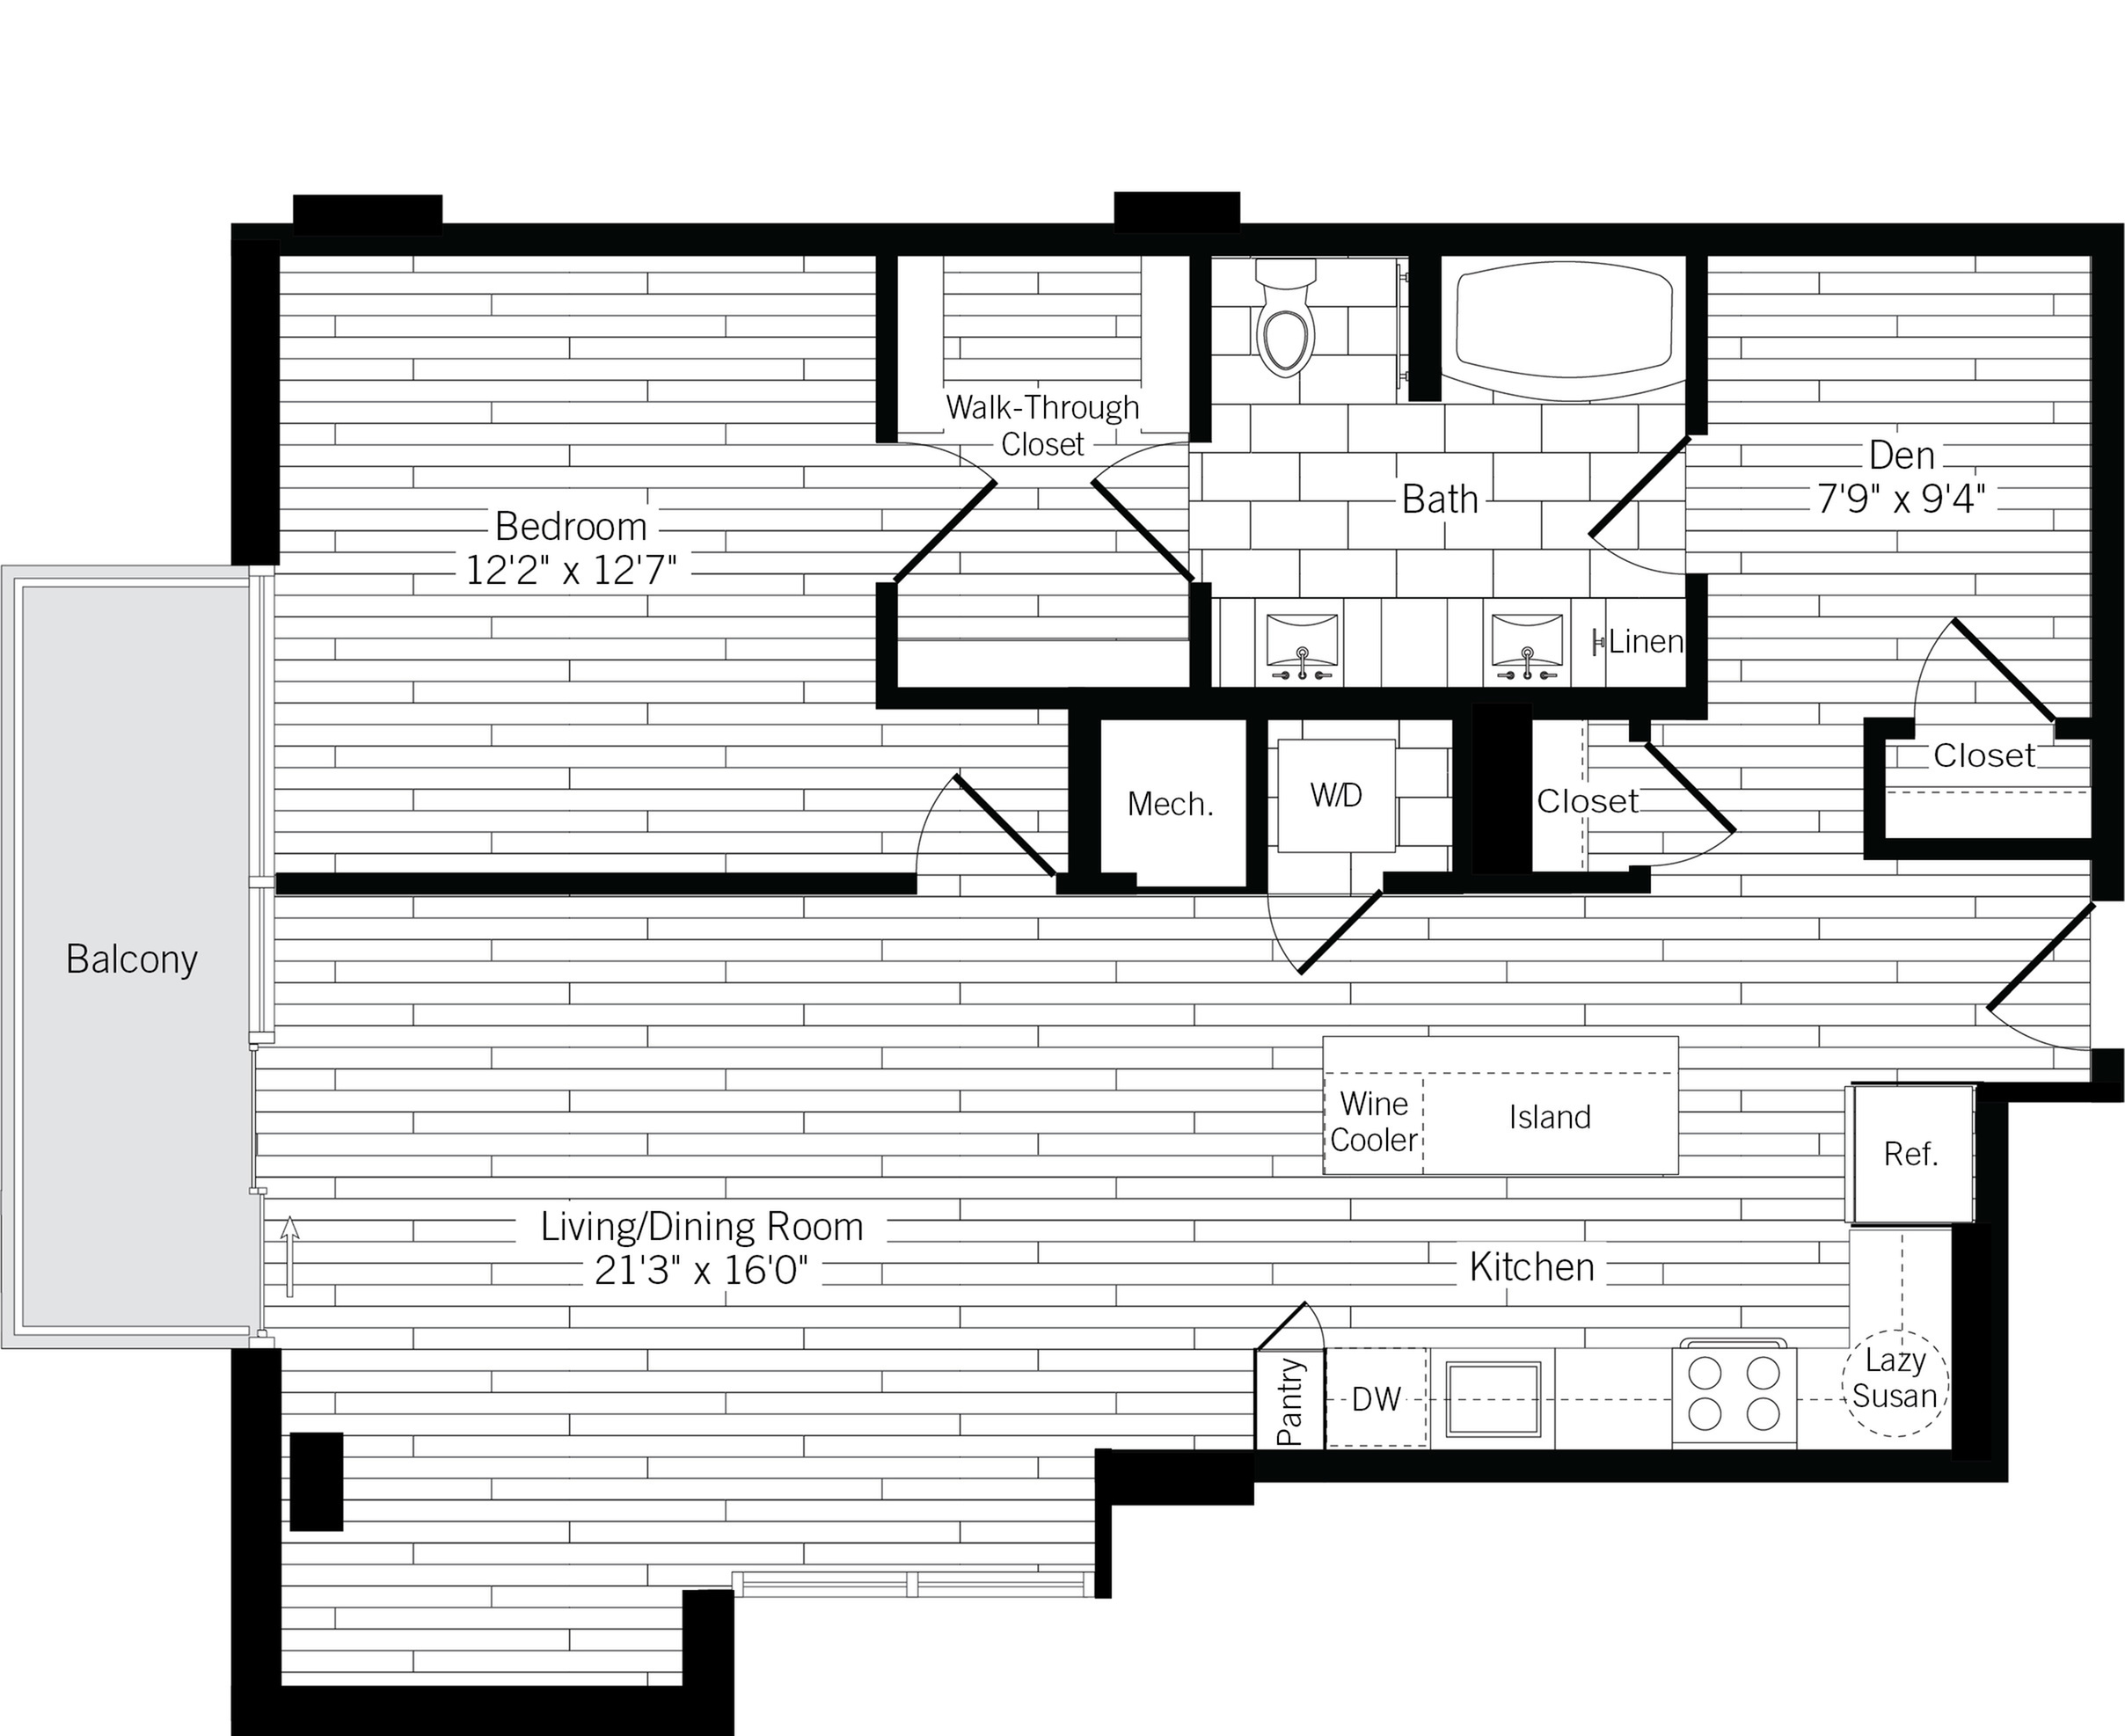 1012 square foot one bedroom one bath with den apartment floorplan image